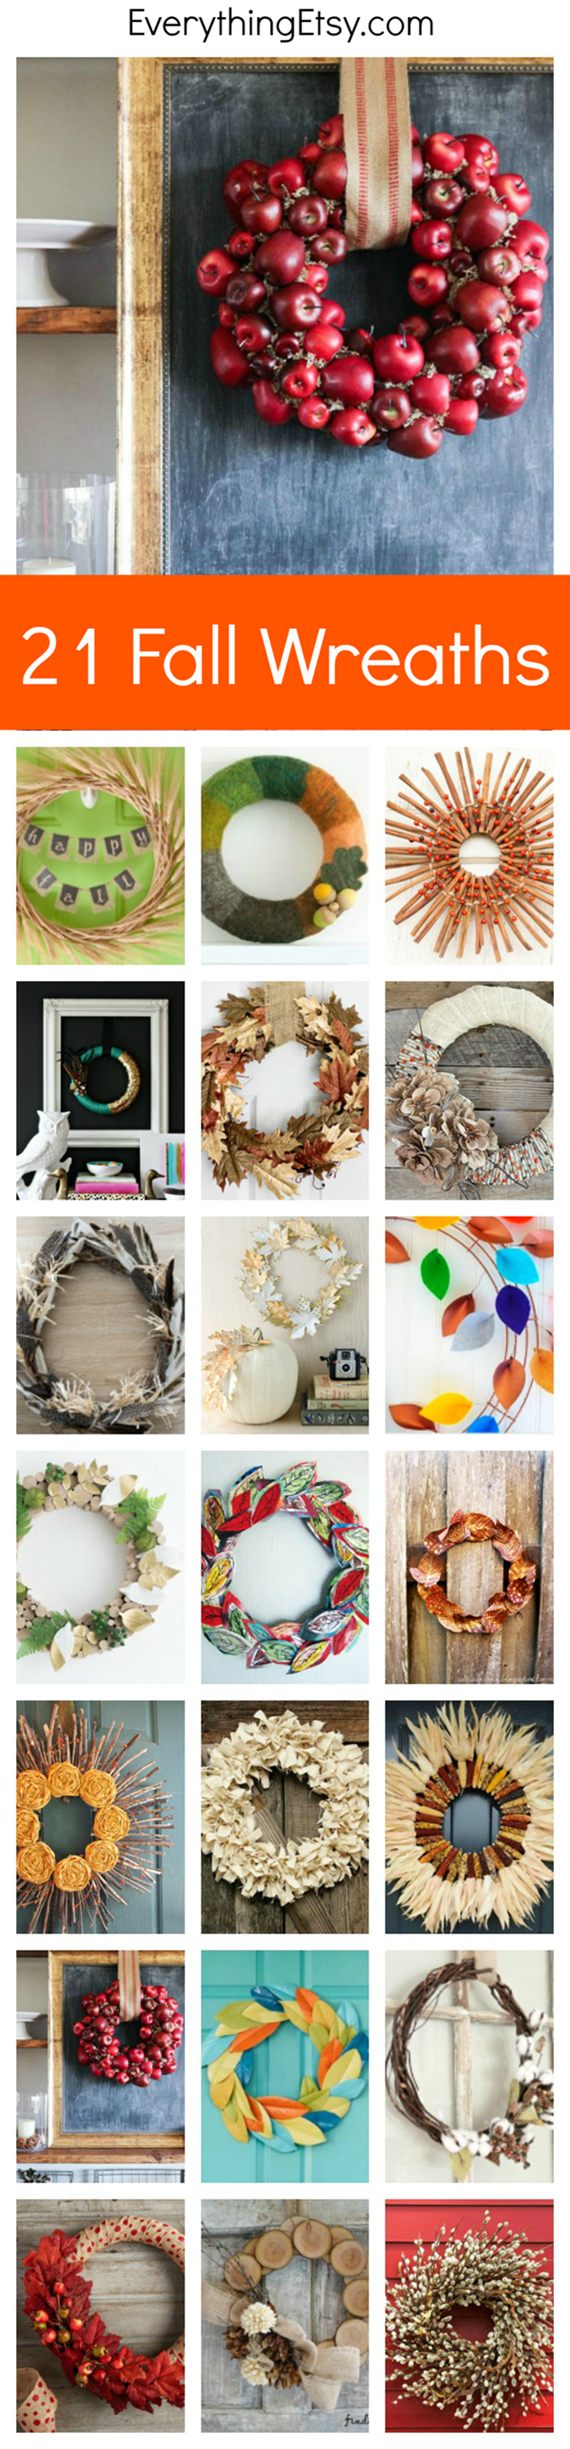 21-Fall-Wreath-Ideas-That-DIY-Dreams-are-Made-of...-EverythingEtsy